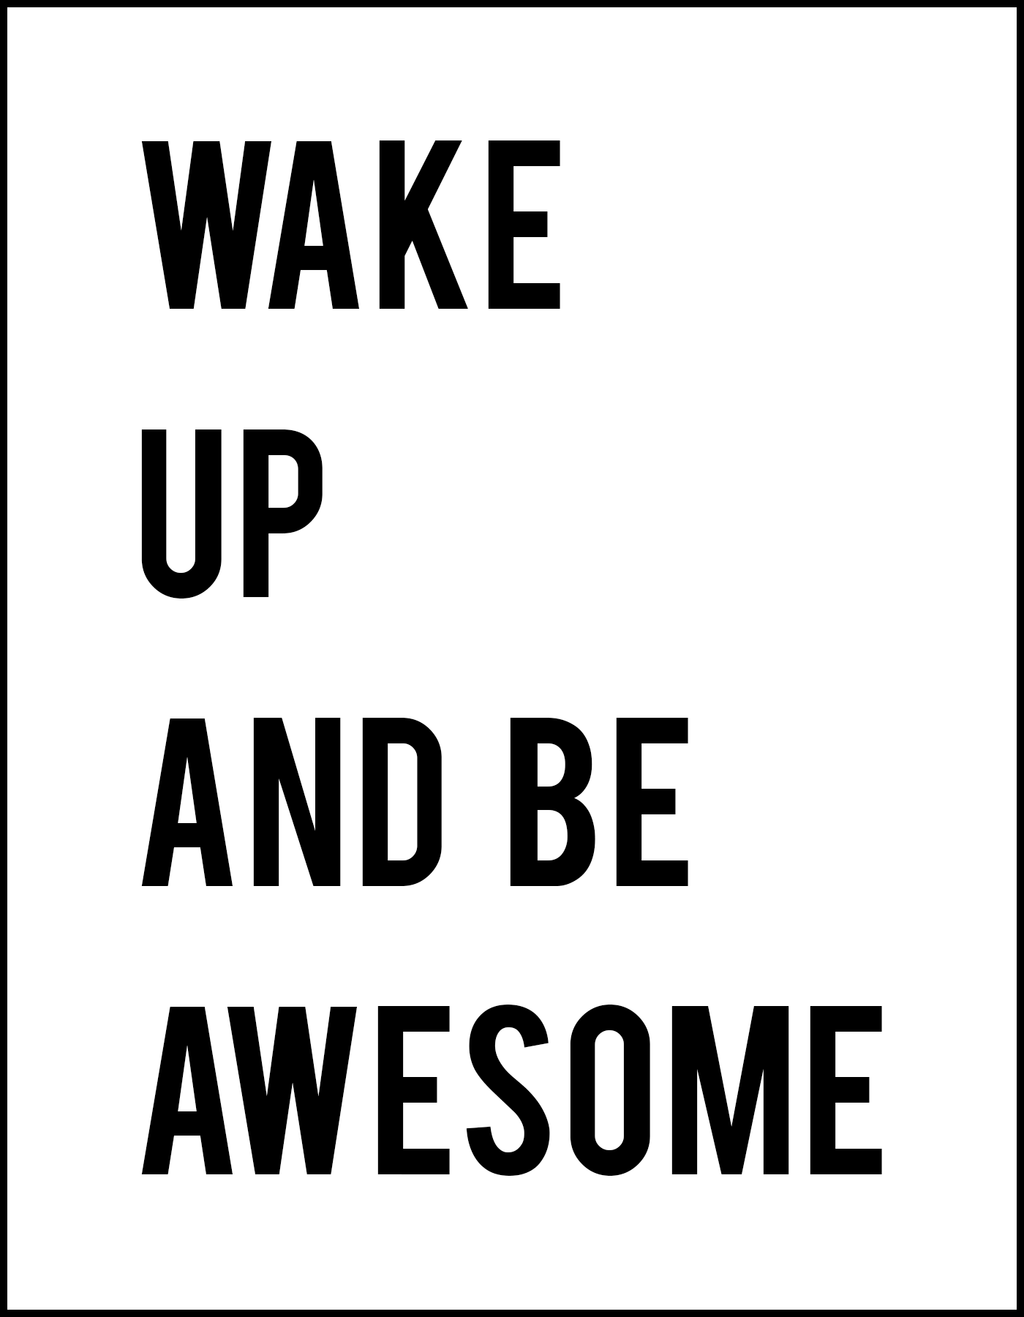 Kids Sign: Wake Up And Be Awesome for Private Event